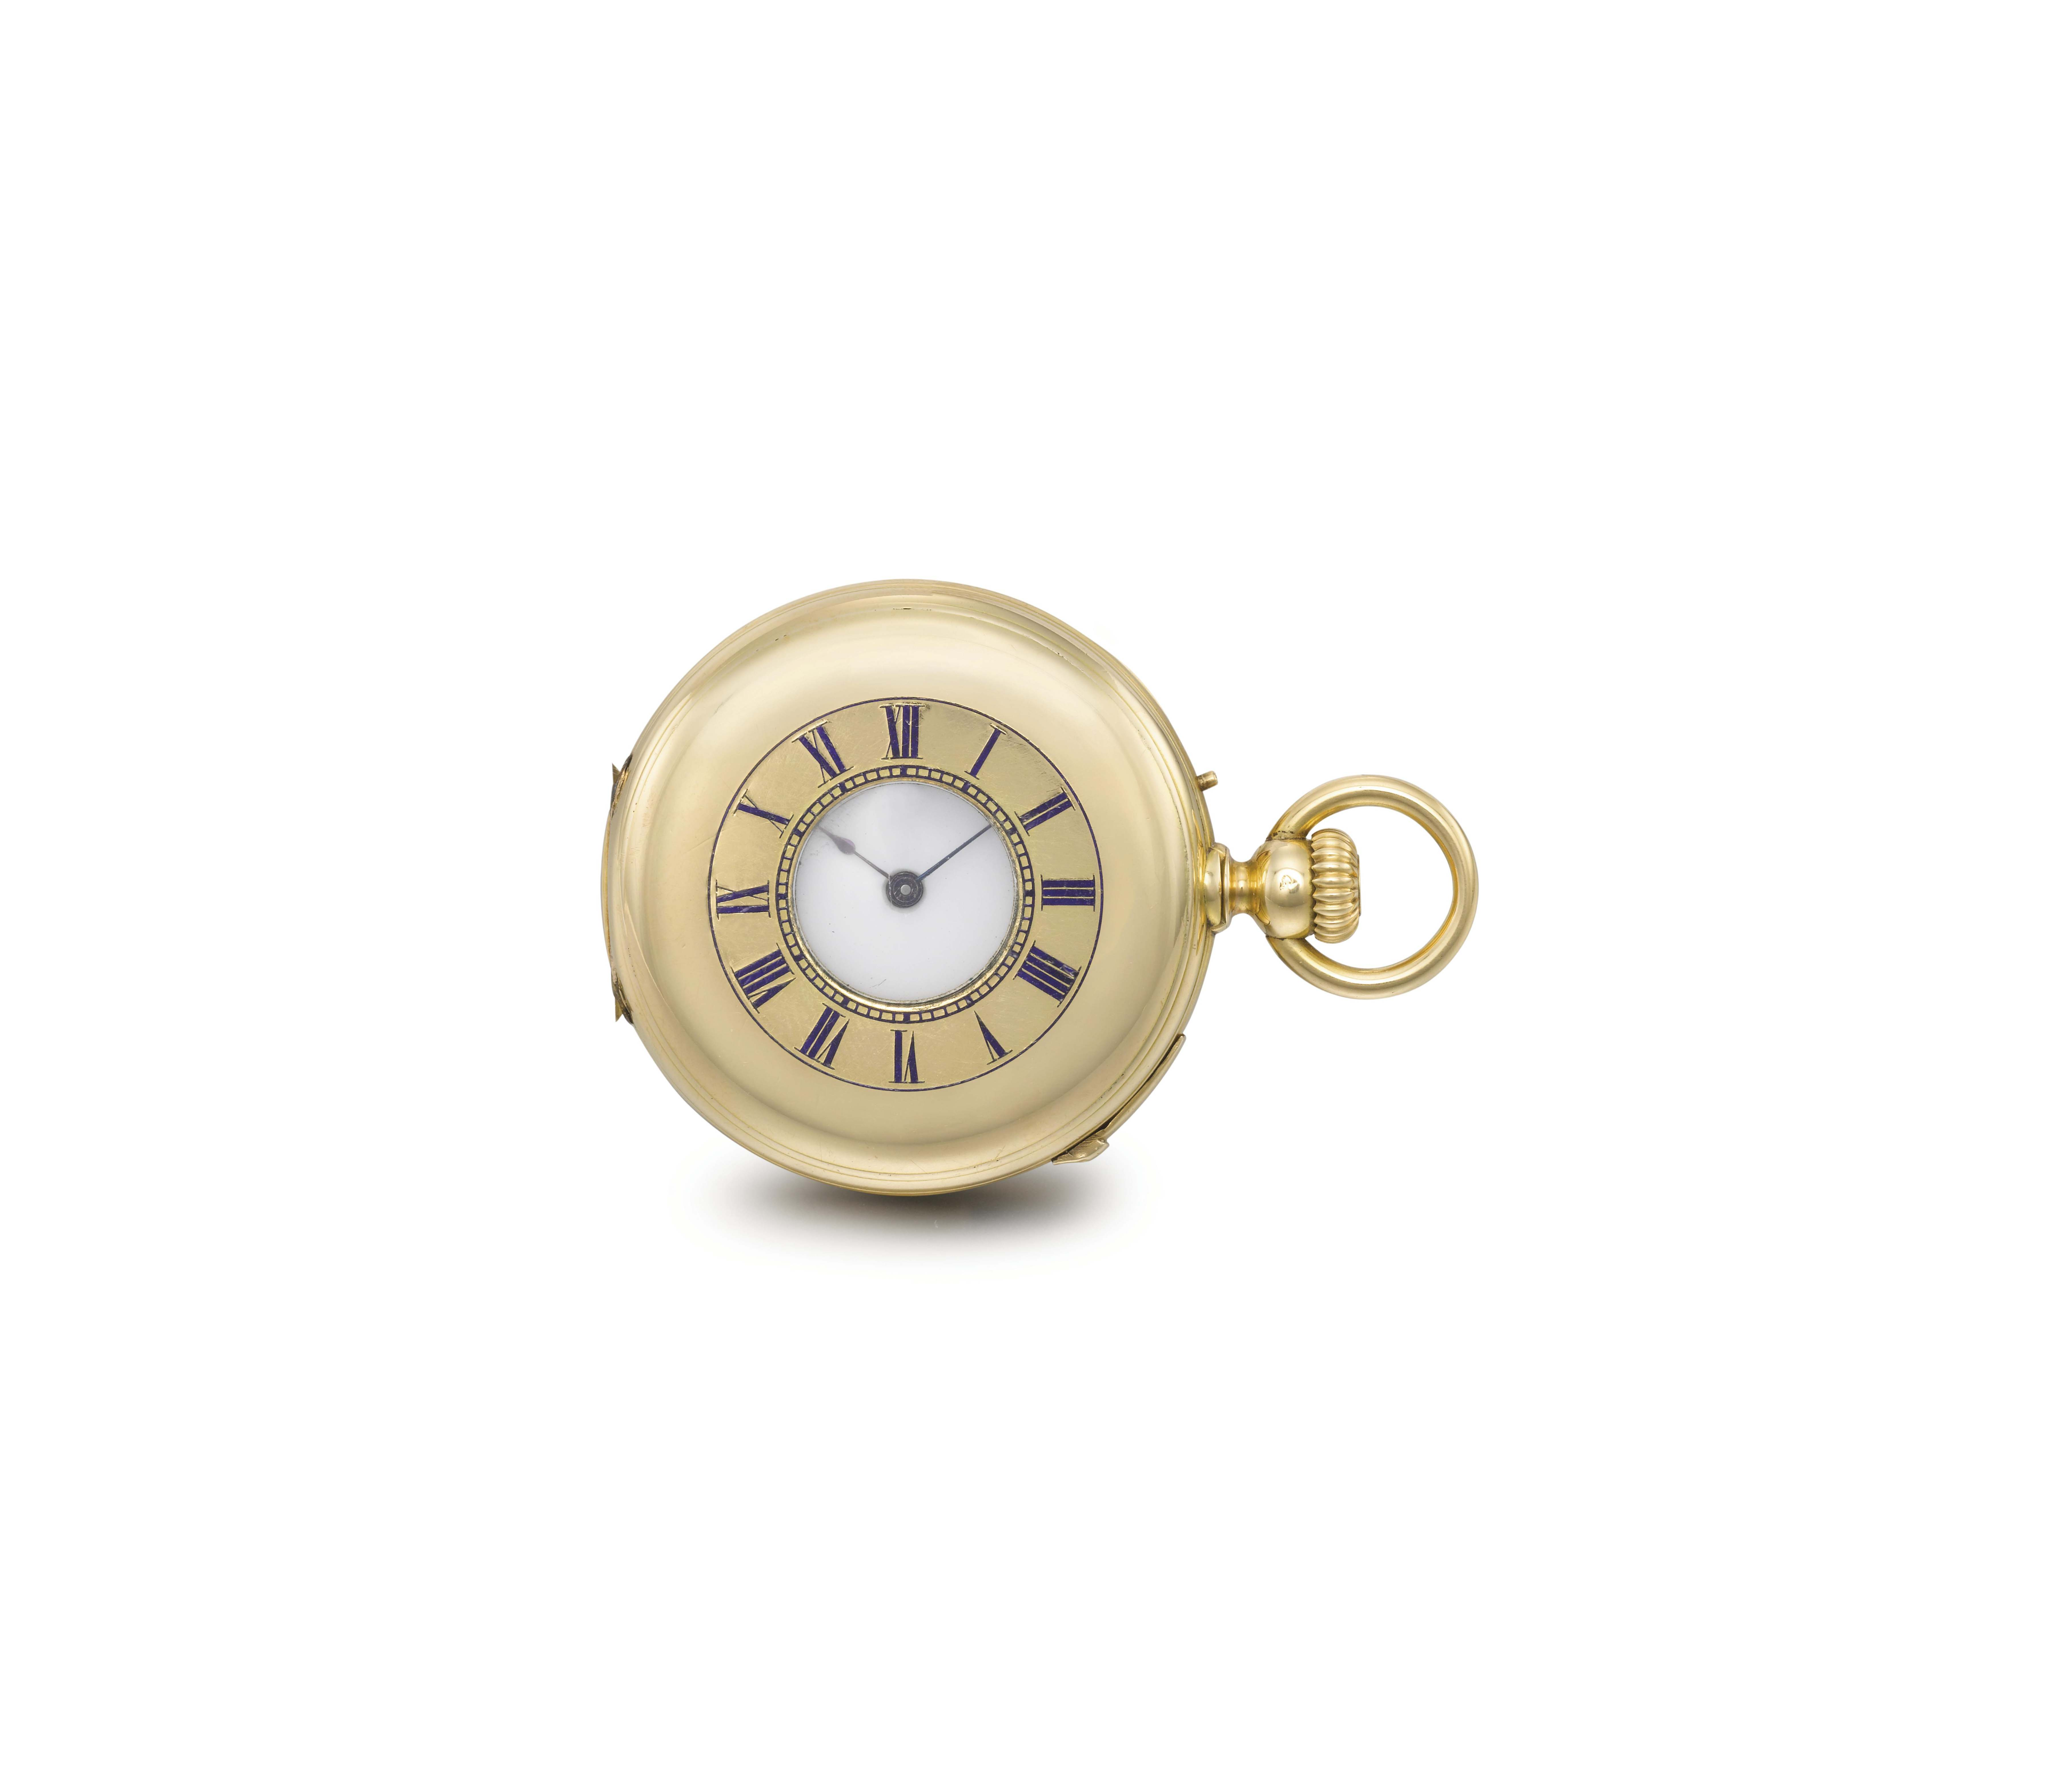 Louis Audemars made for Le Roy & Fils. A fine and small 18K gold half hunter case quarter repeating keyless lever watch